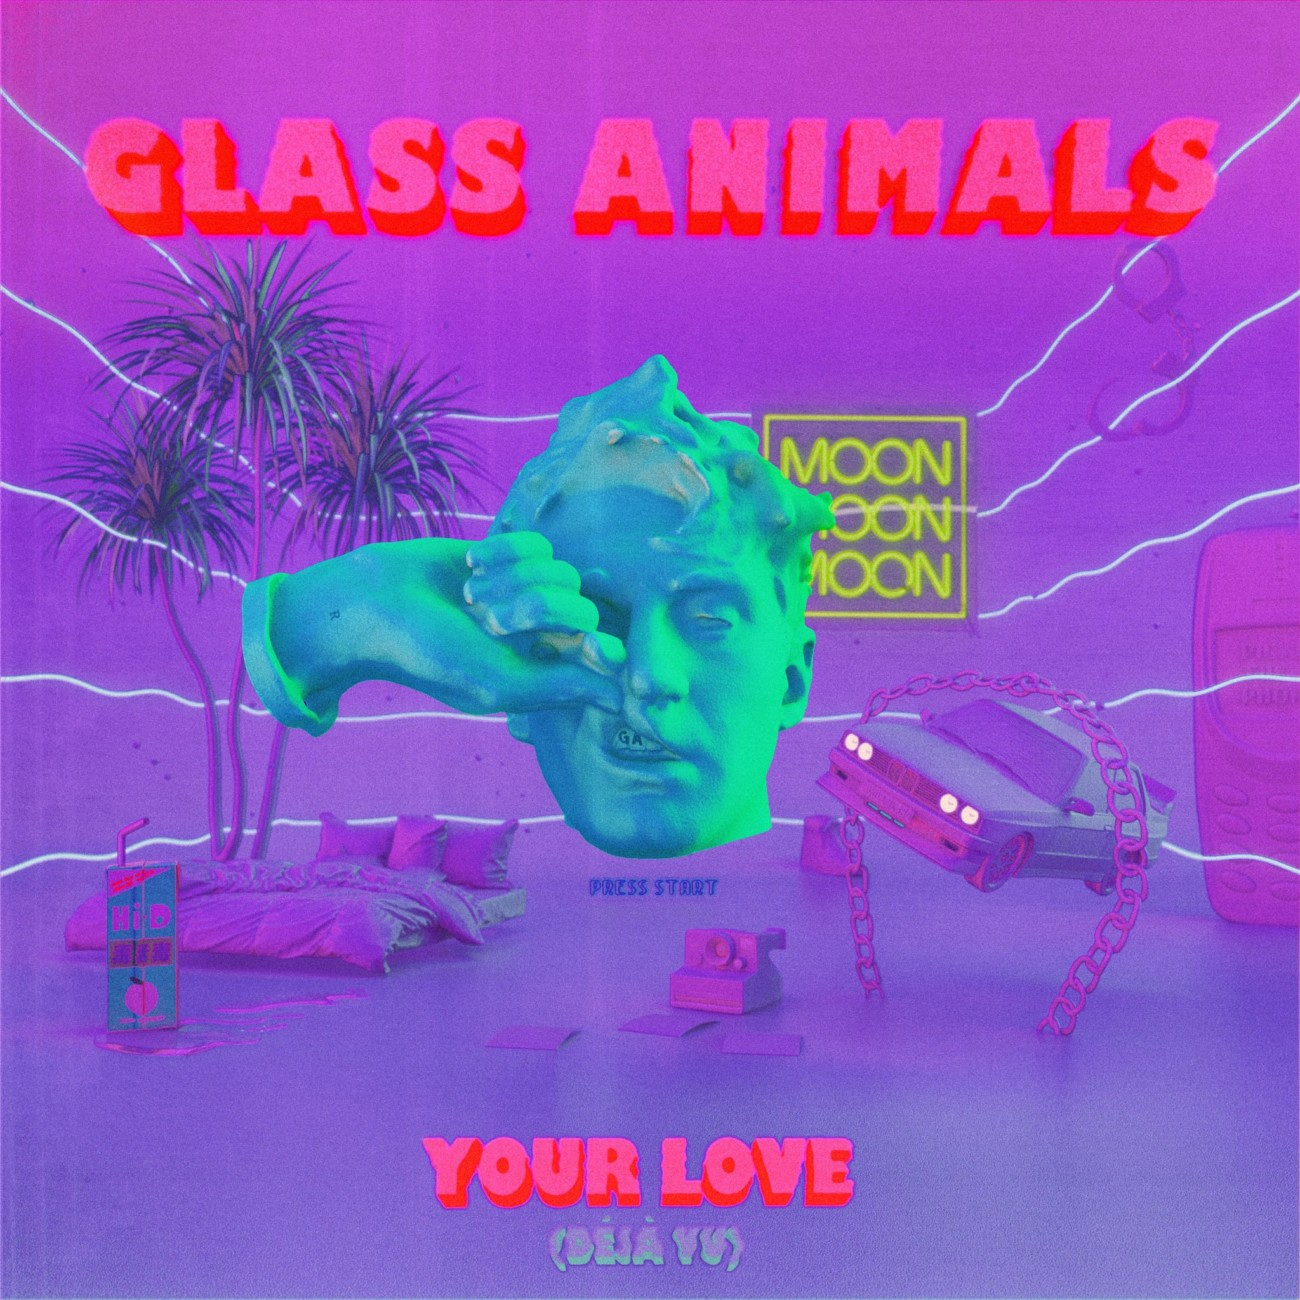 Image du morceau Your Love (Déjà Vu) de Glass Animals